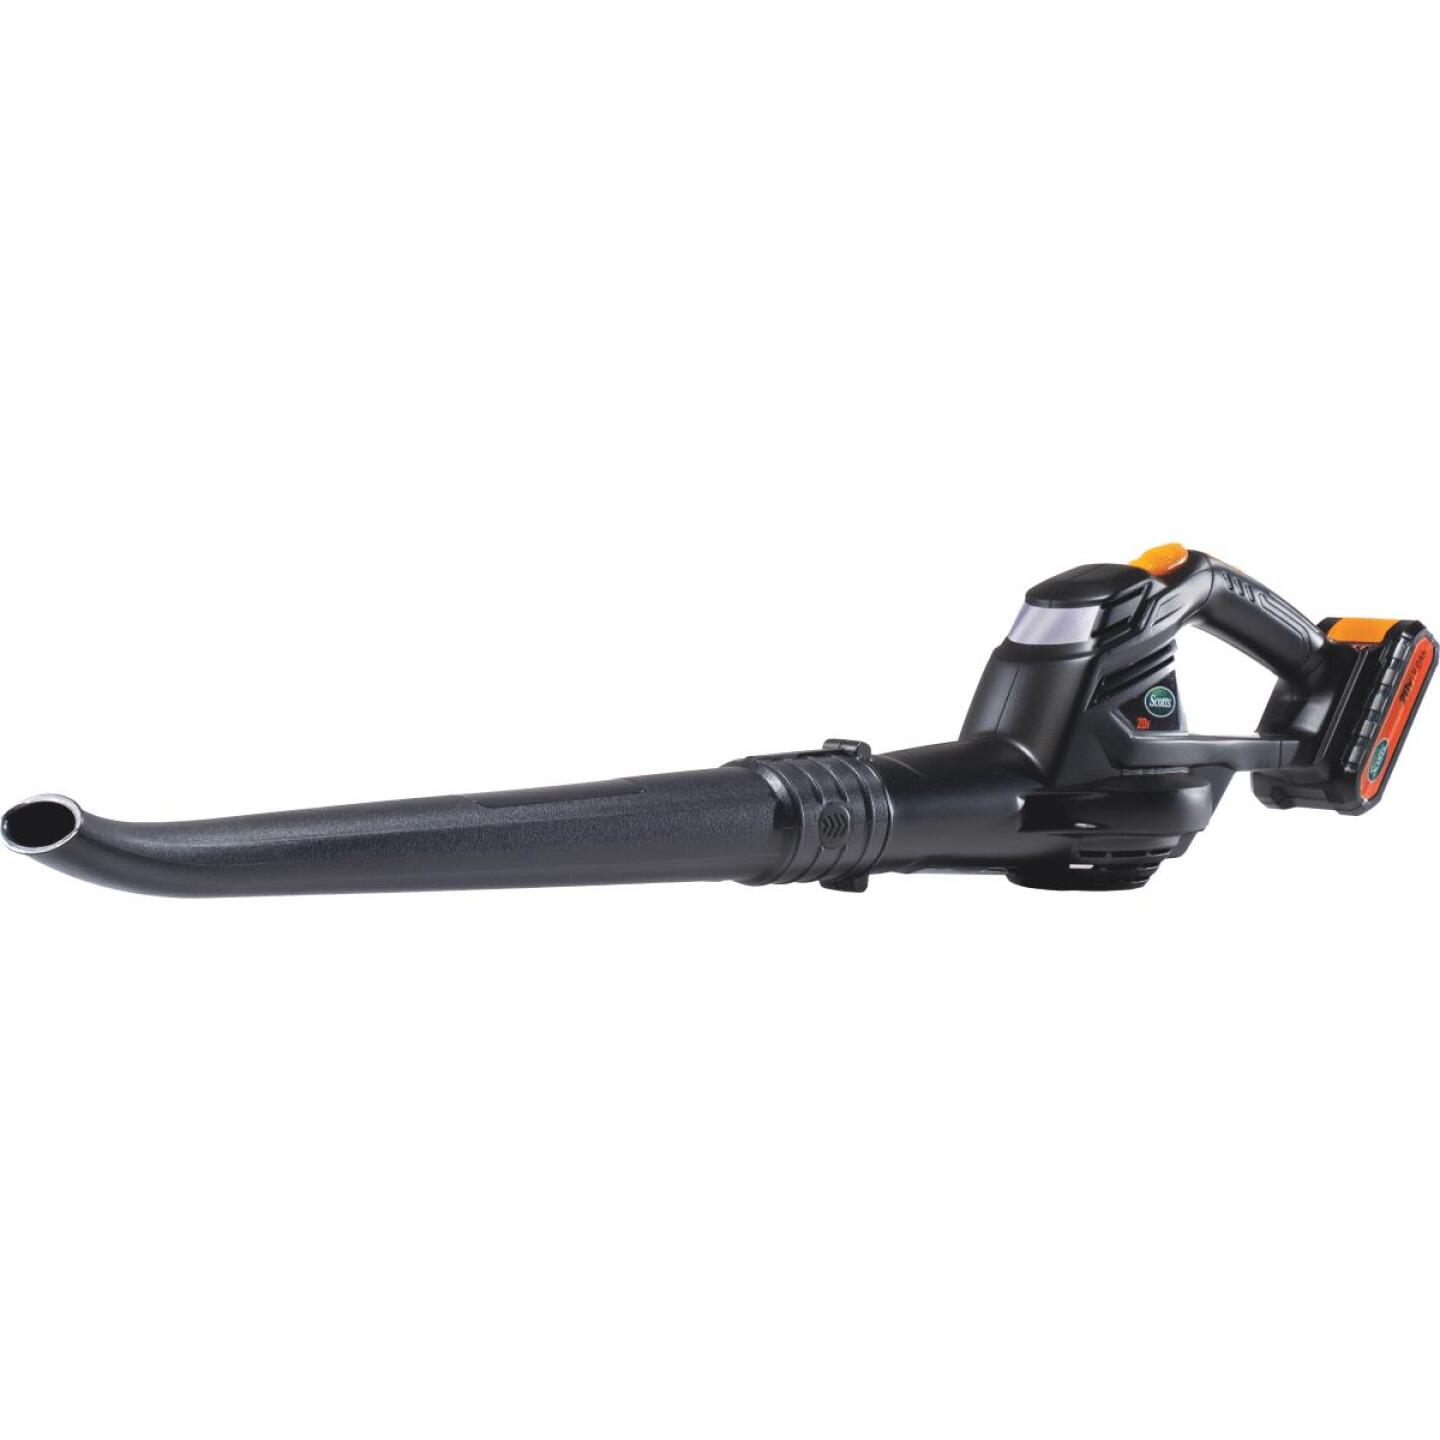 Scotts 130 MPH 20V Lithium-Ion Cordless Blower Image 3